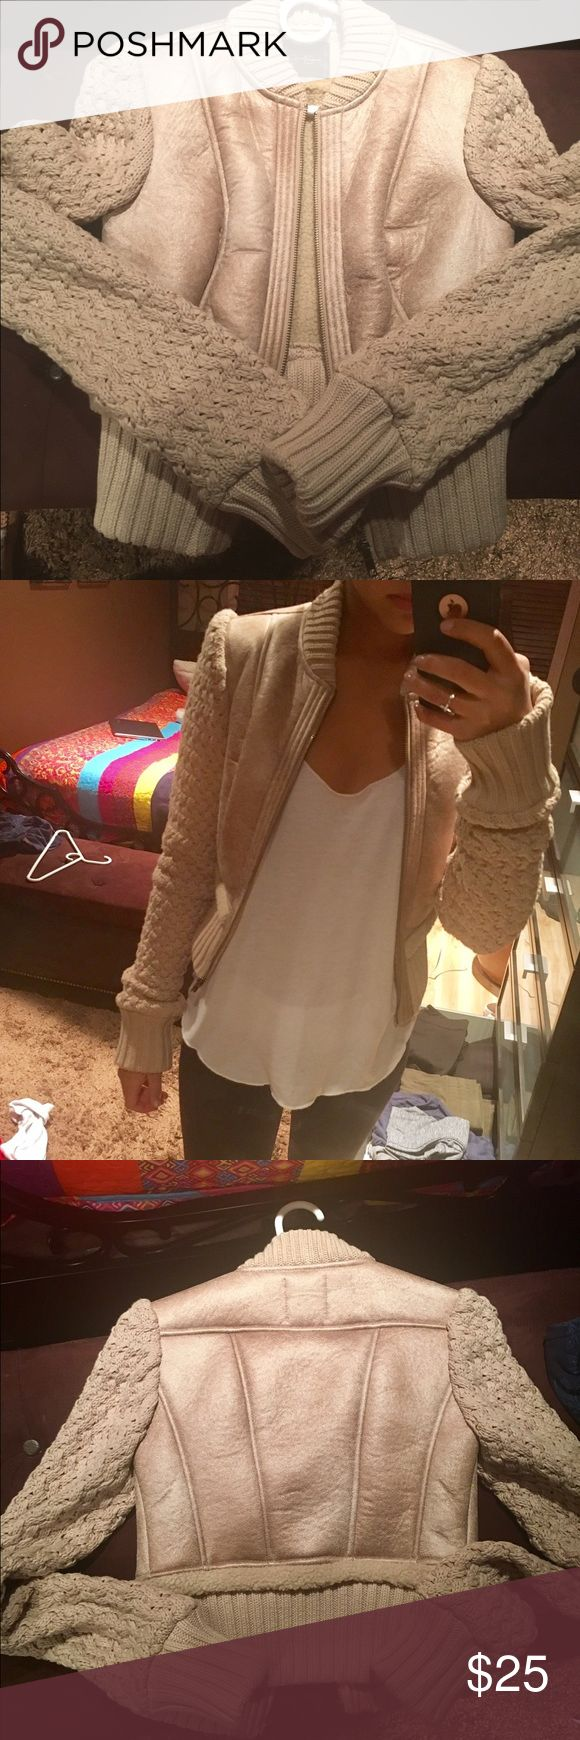 Jessica Simpson Fashion Jacket Jessica Simpson winter fashion jacket. Size Xs never worn but no tags. In perfect condition! The color is a light brown/ beige. Jackets & Coats